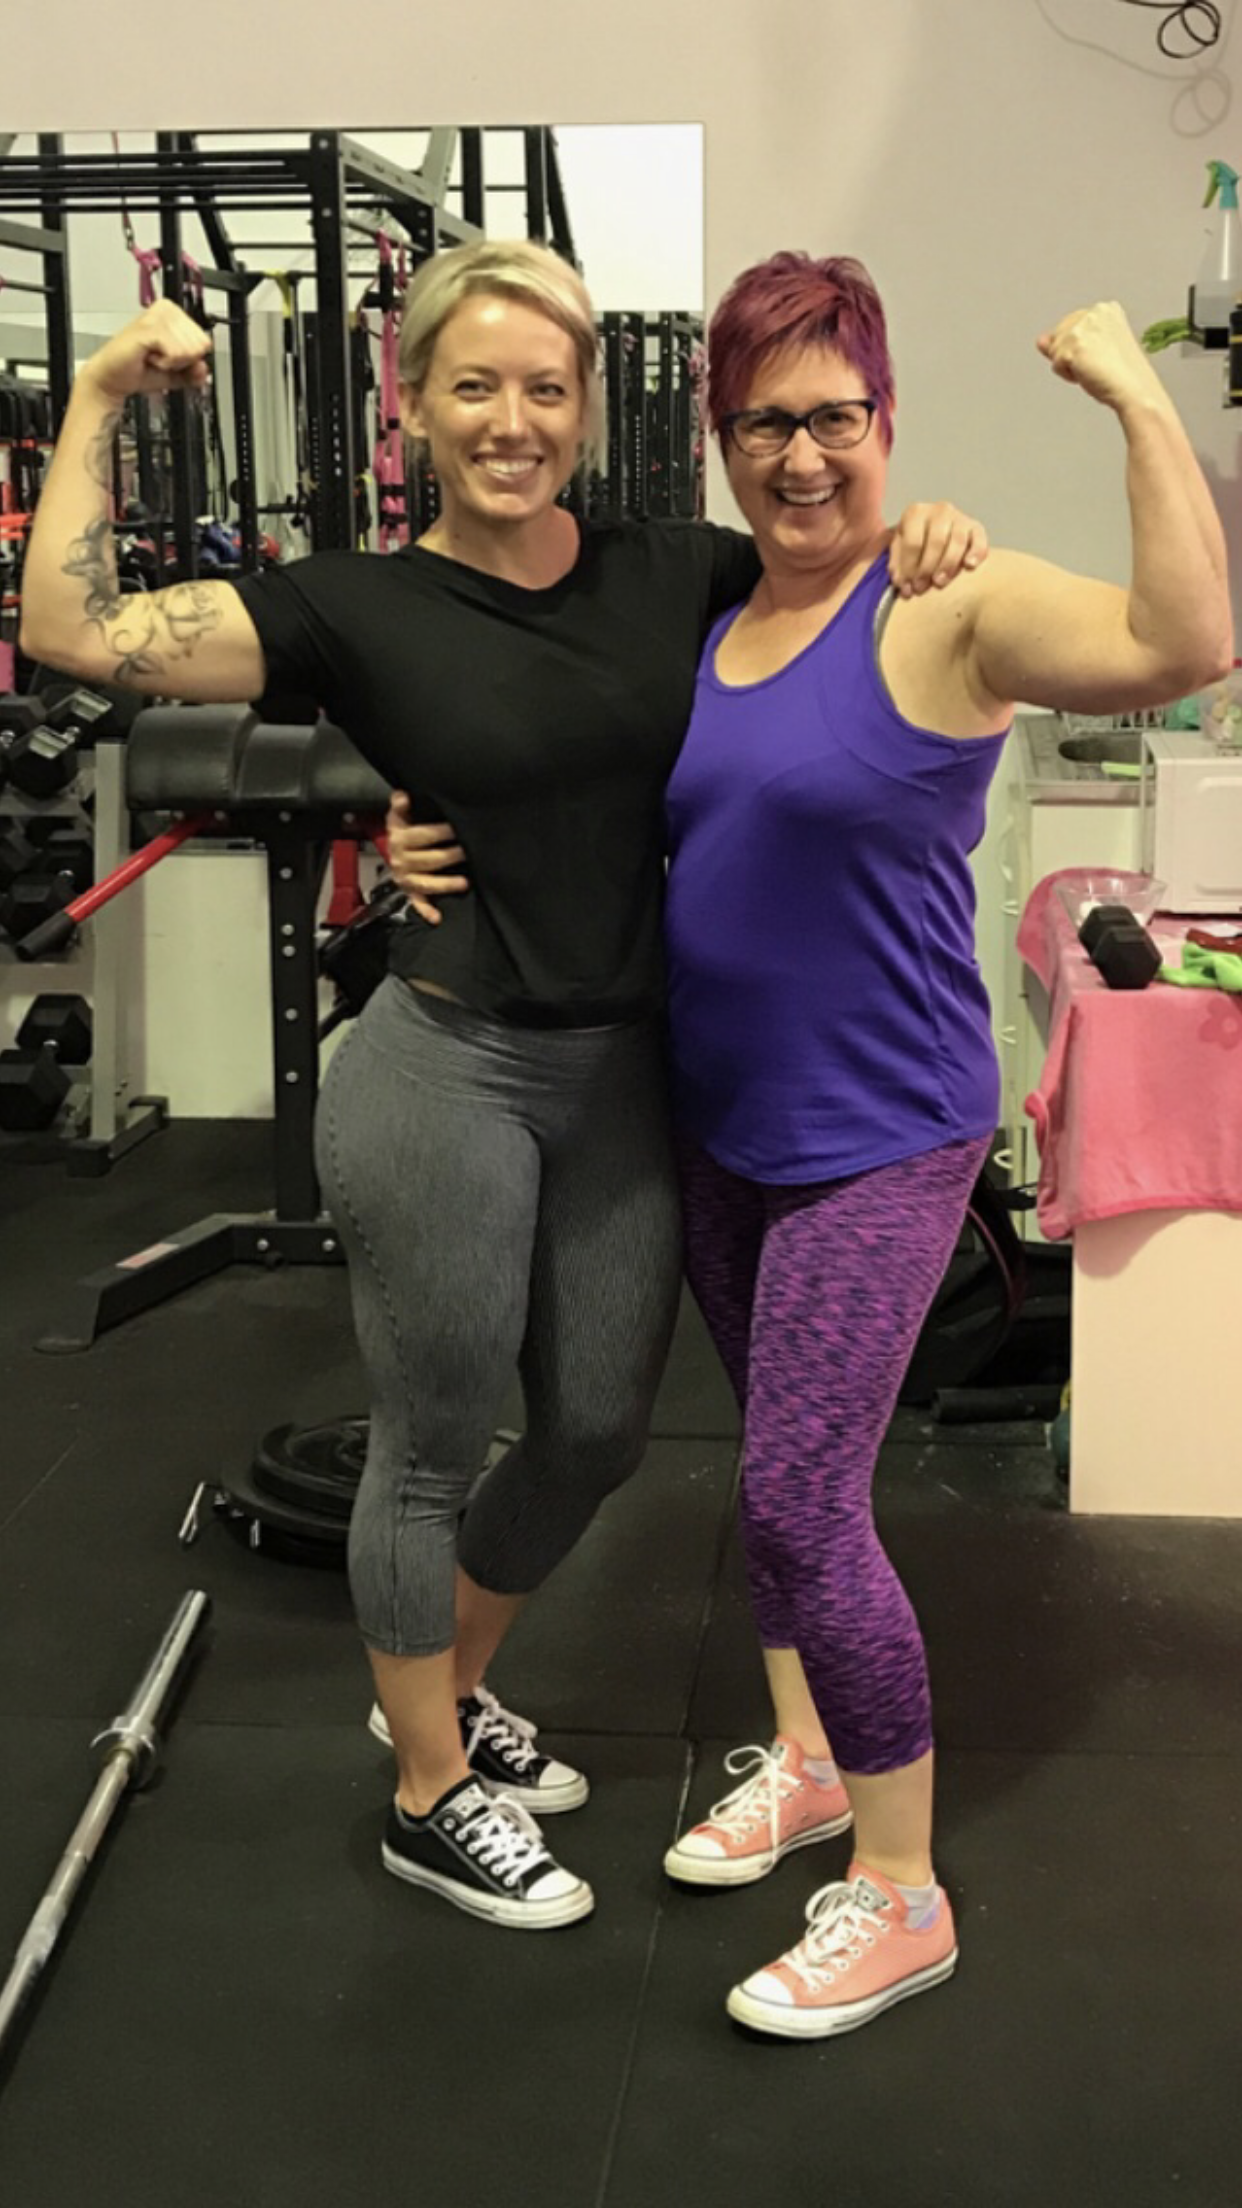 """I was 55, overweight and had not been to a gym for about 8 years. From the very first day Sarah was present, attentive, careful and exceptionally professional. Sarah always checked in with me about how my body was feeling. I started with sore knees and was extremely unfit. Sarah took her time as we built on strengthening my body. Sarah is extremely focussed on detail to prevent injury when getting form correct. Sarah helped with setting realistic goals and is incredibly encouraging. I had the most amazing 12 months with Sarah and achieved goals I would never have imagined. She was incredible at tapping into what was possible, pushing through a few years and difficult times. She never gave up on me which secured my commitment to also never give up on me. I have missed her since I moved away. Sarah has the highest integrity and is an incredible Personal Trainer.""  - Diane"